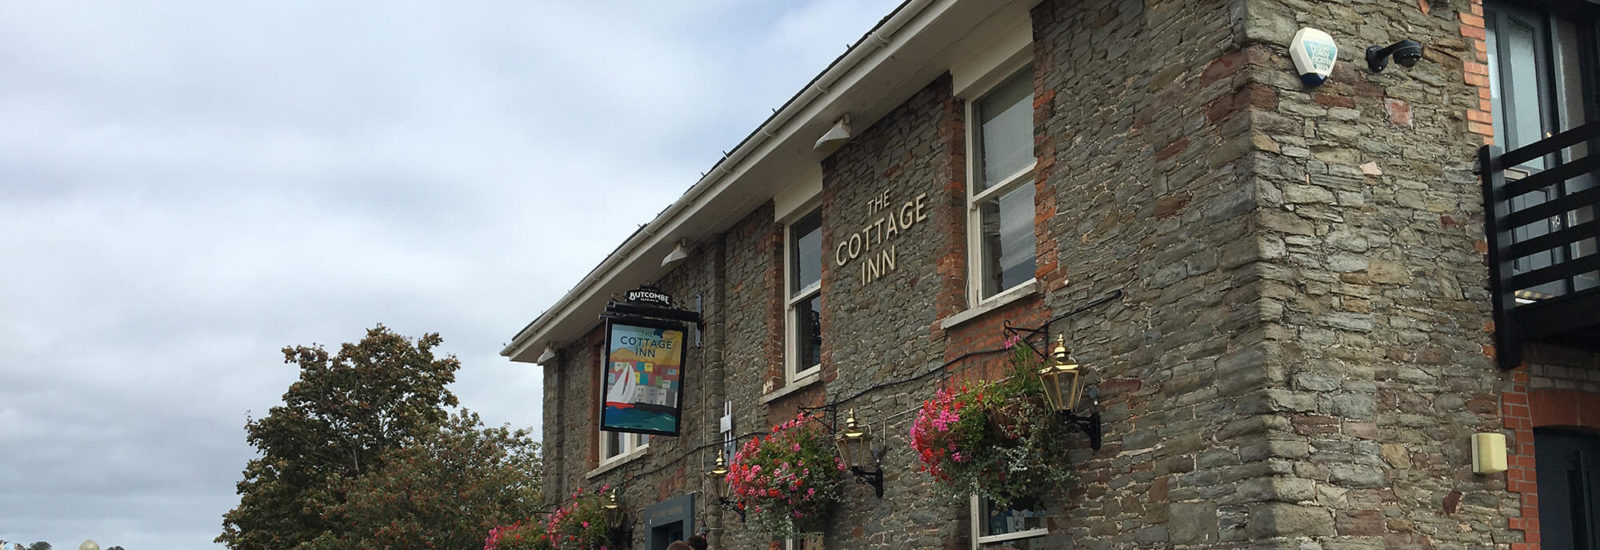 Image of The Cottage Inn